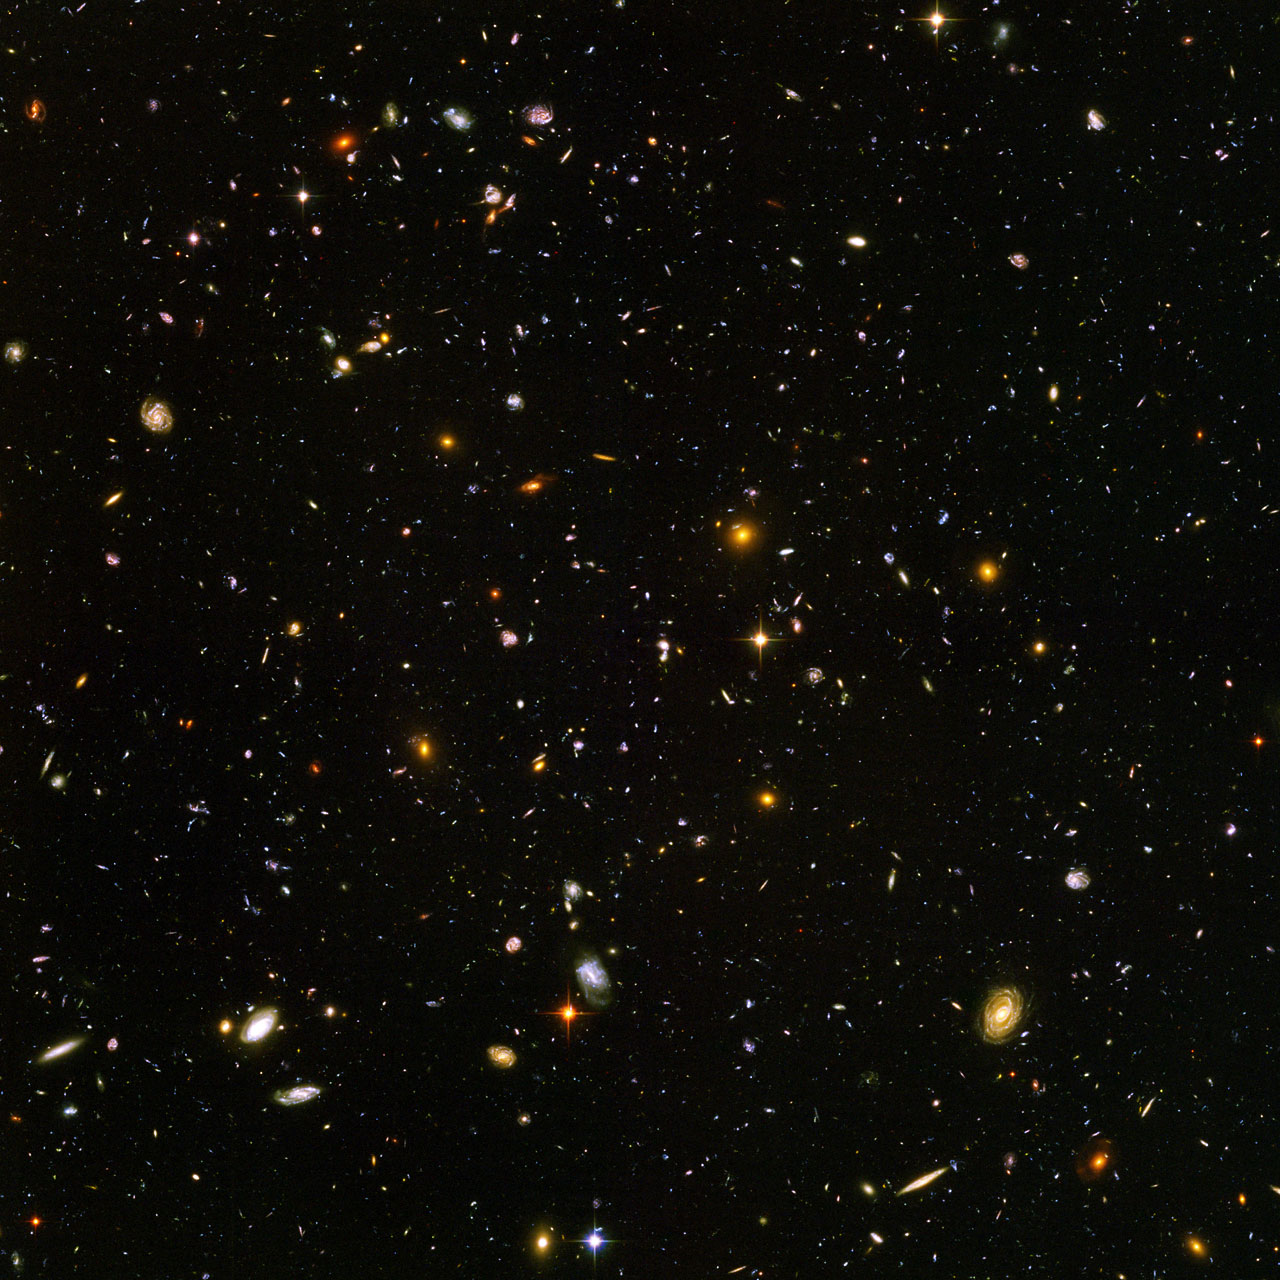 Hubble Ultra Deep Field by NASA/ ESA